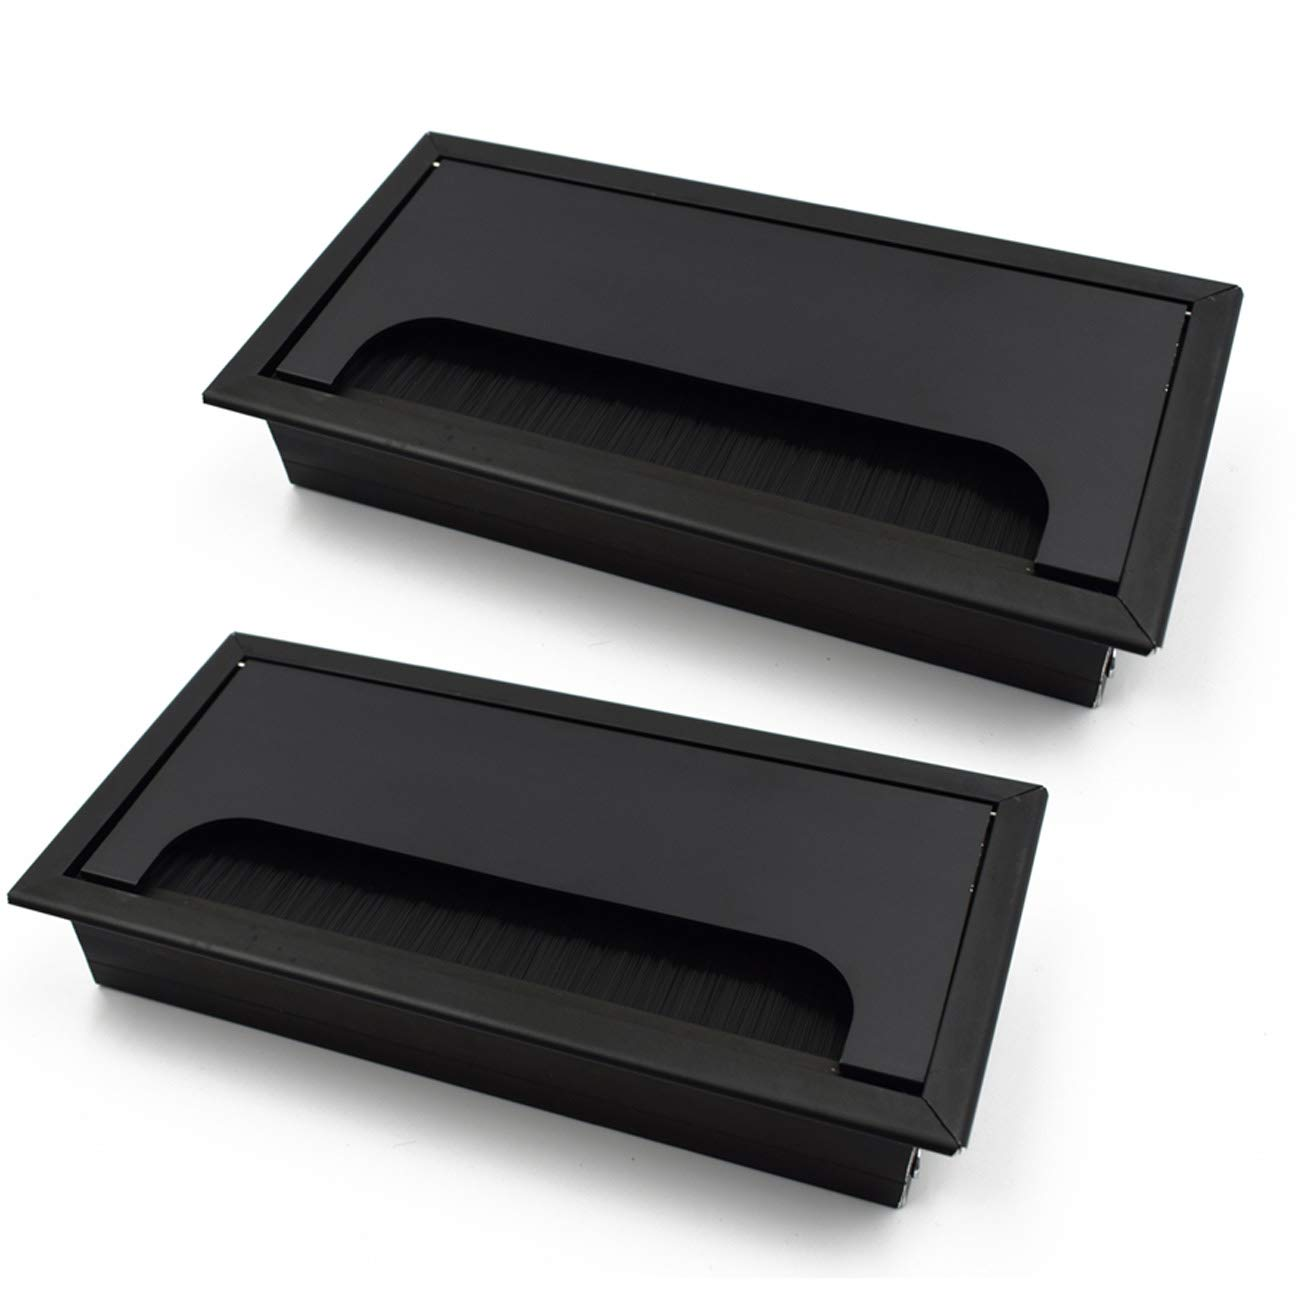 LICTOP Black 160mm Metal Rectangle Wire Cable Grommet Hole Cover for Computer Desk Table(2Pcs) by LICTOP